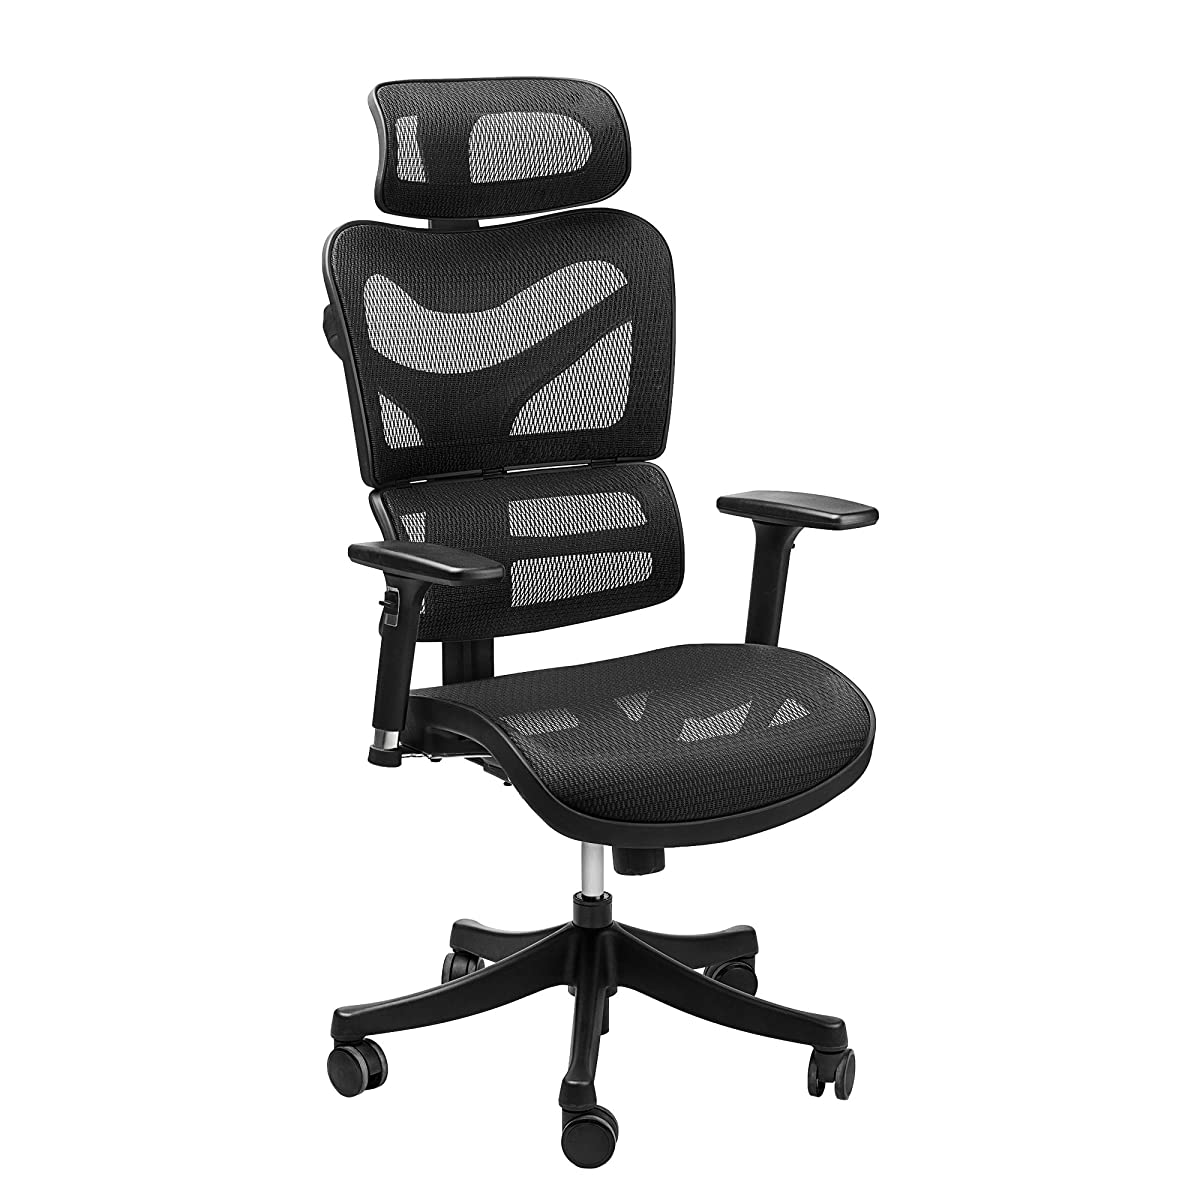 Ergonomic Mesh Office Chair Sieges Adjustable Headrest